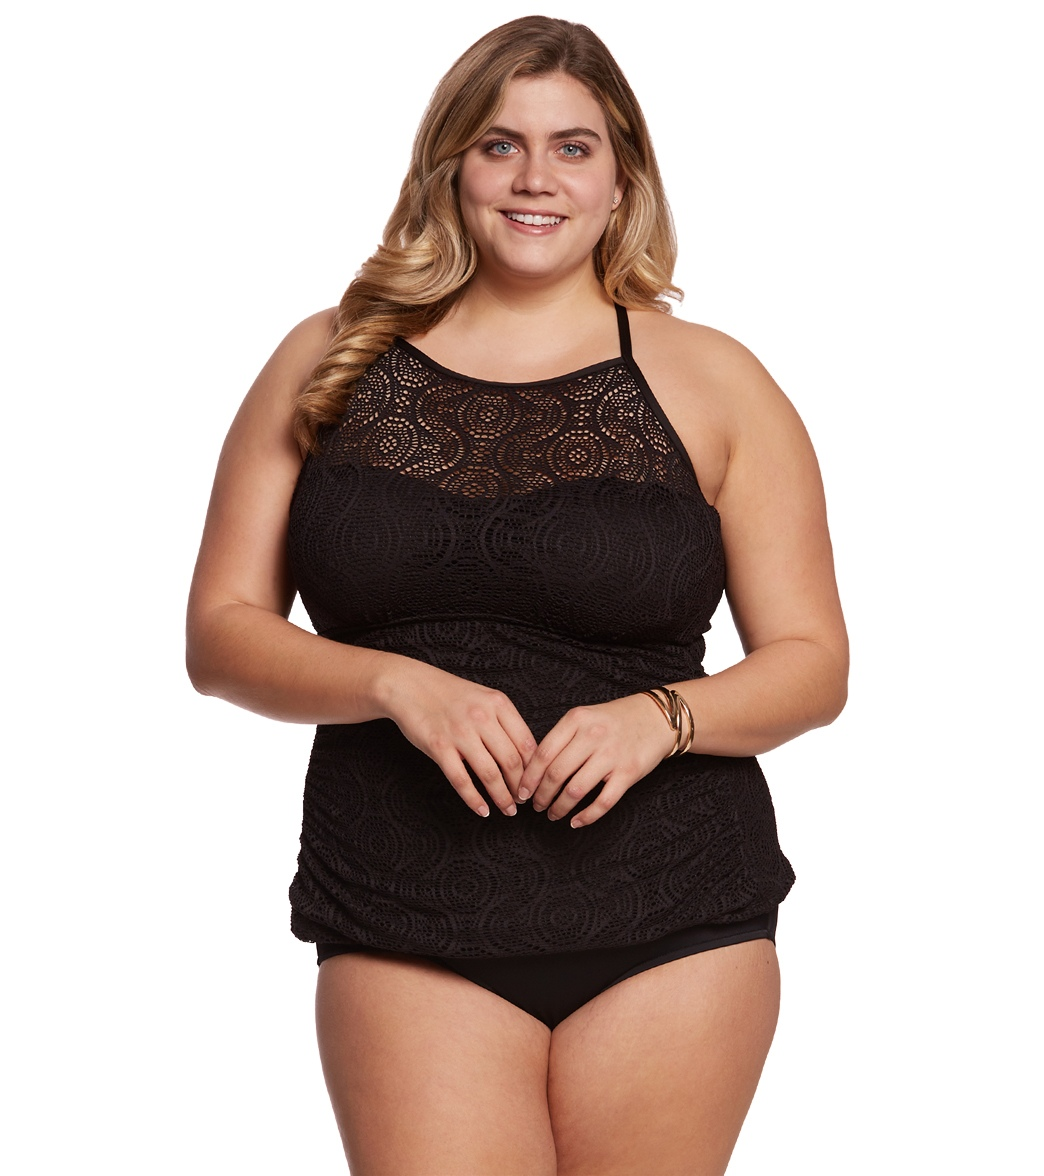 8747a89fec0 ... Plus Size Sheer Brilliance High Neck Tankini Top Play Video. MODEL  MEASUREMENTS